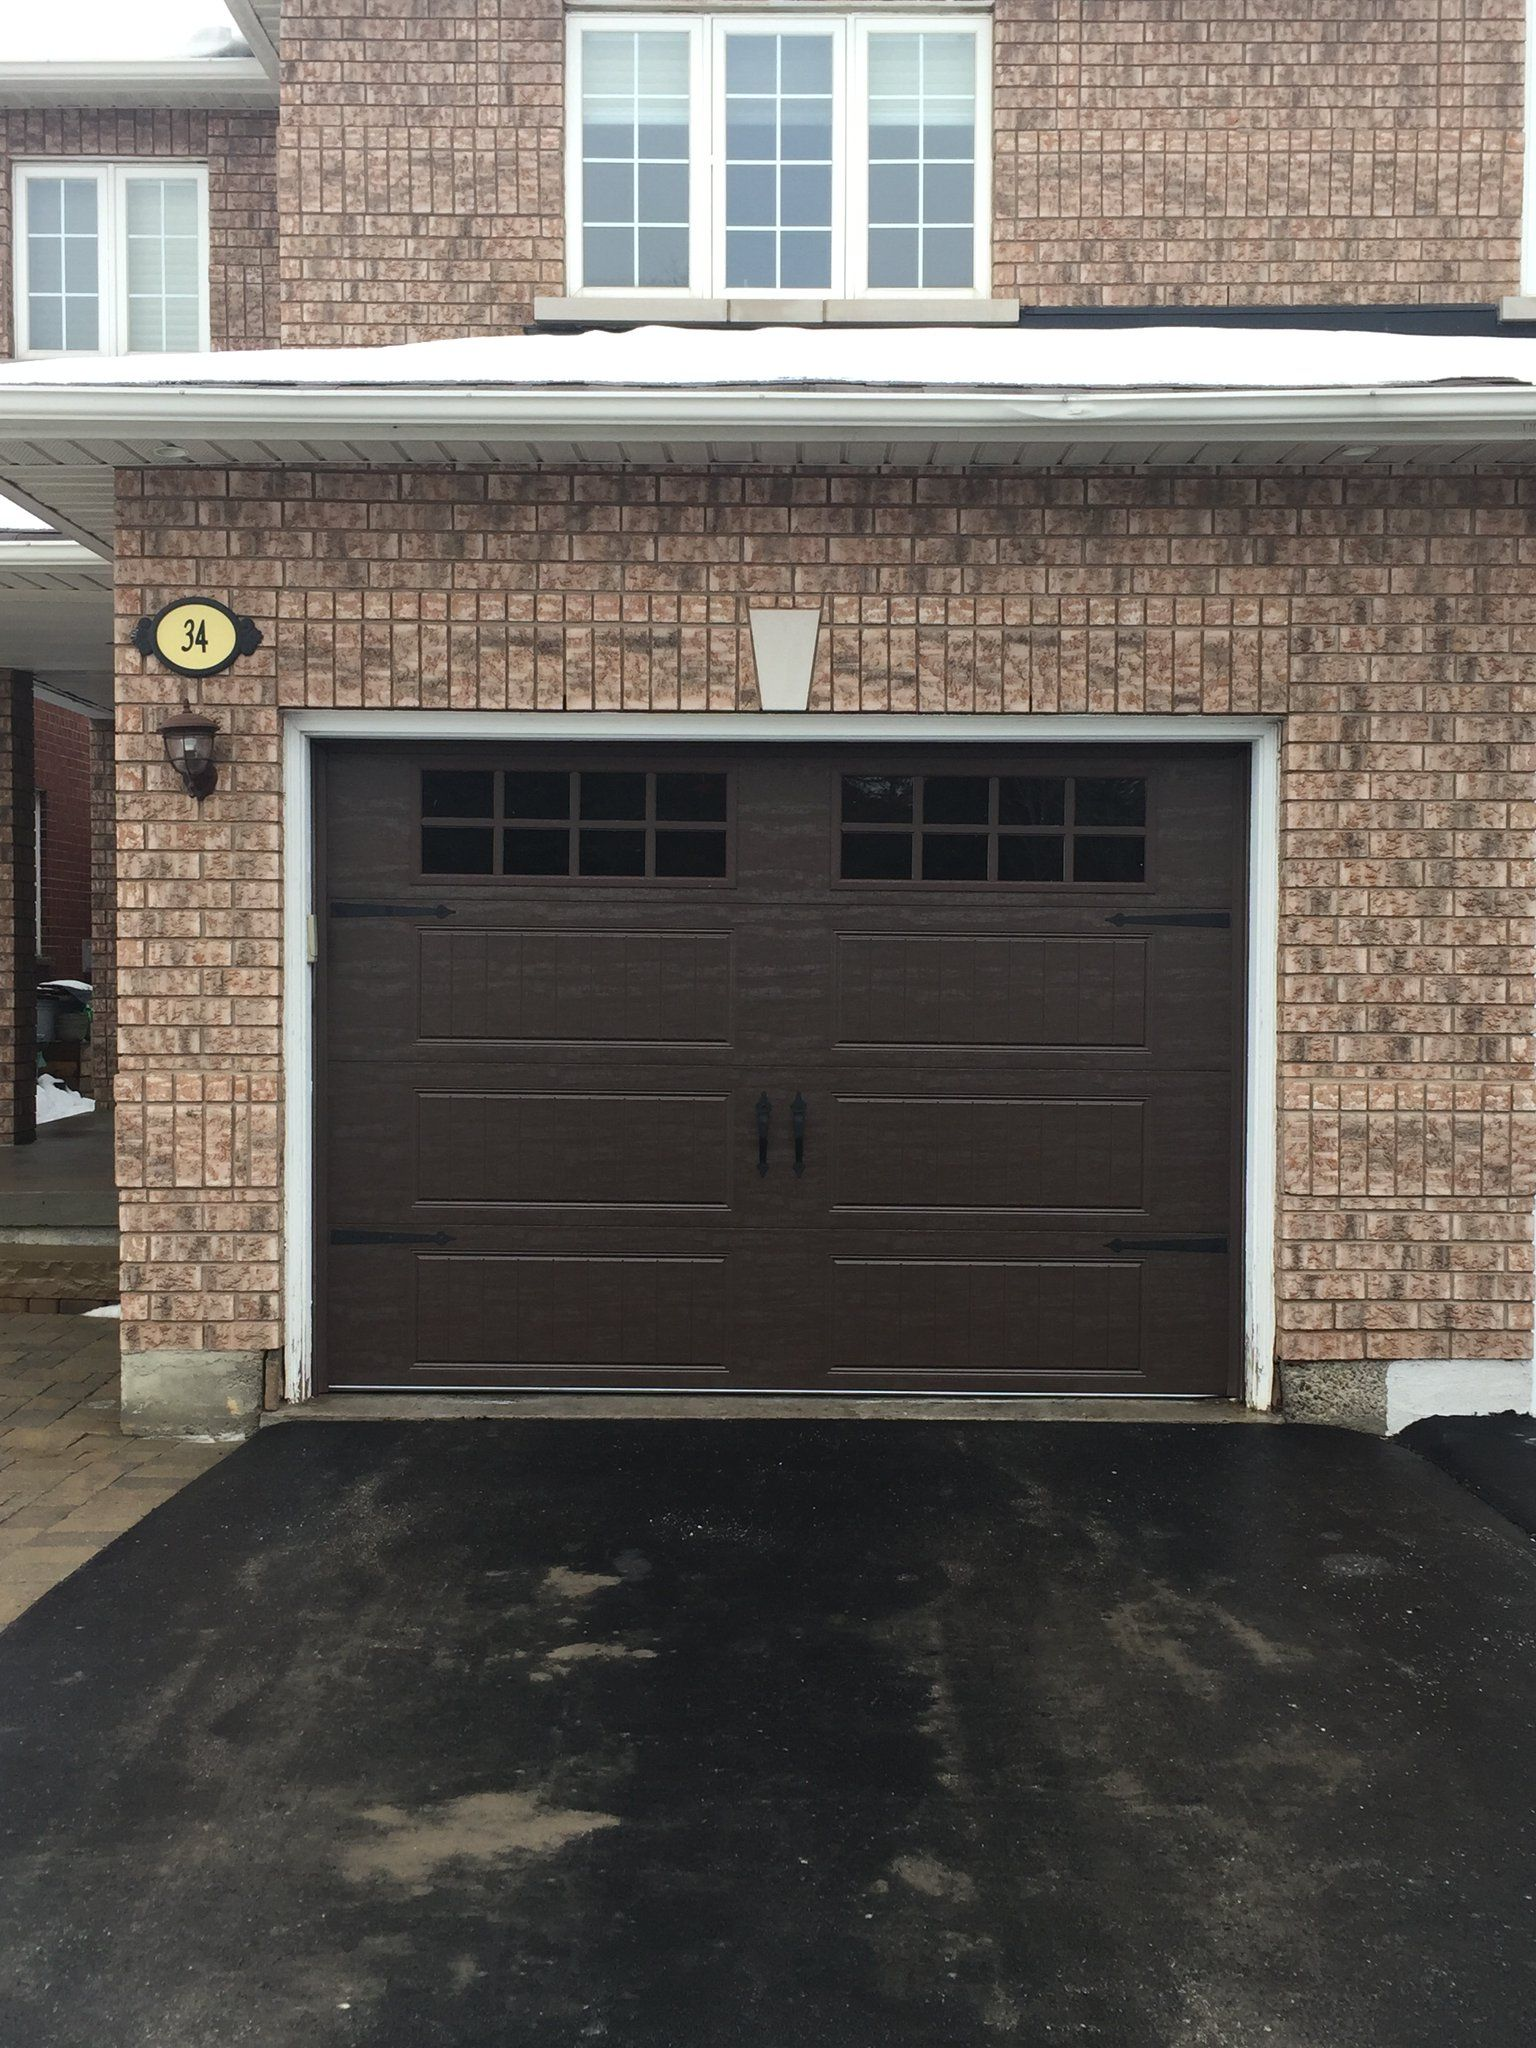 Top Team Garage Door Repair On Garage Doors Garage Door Design Garage Door Repair